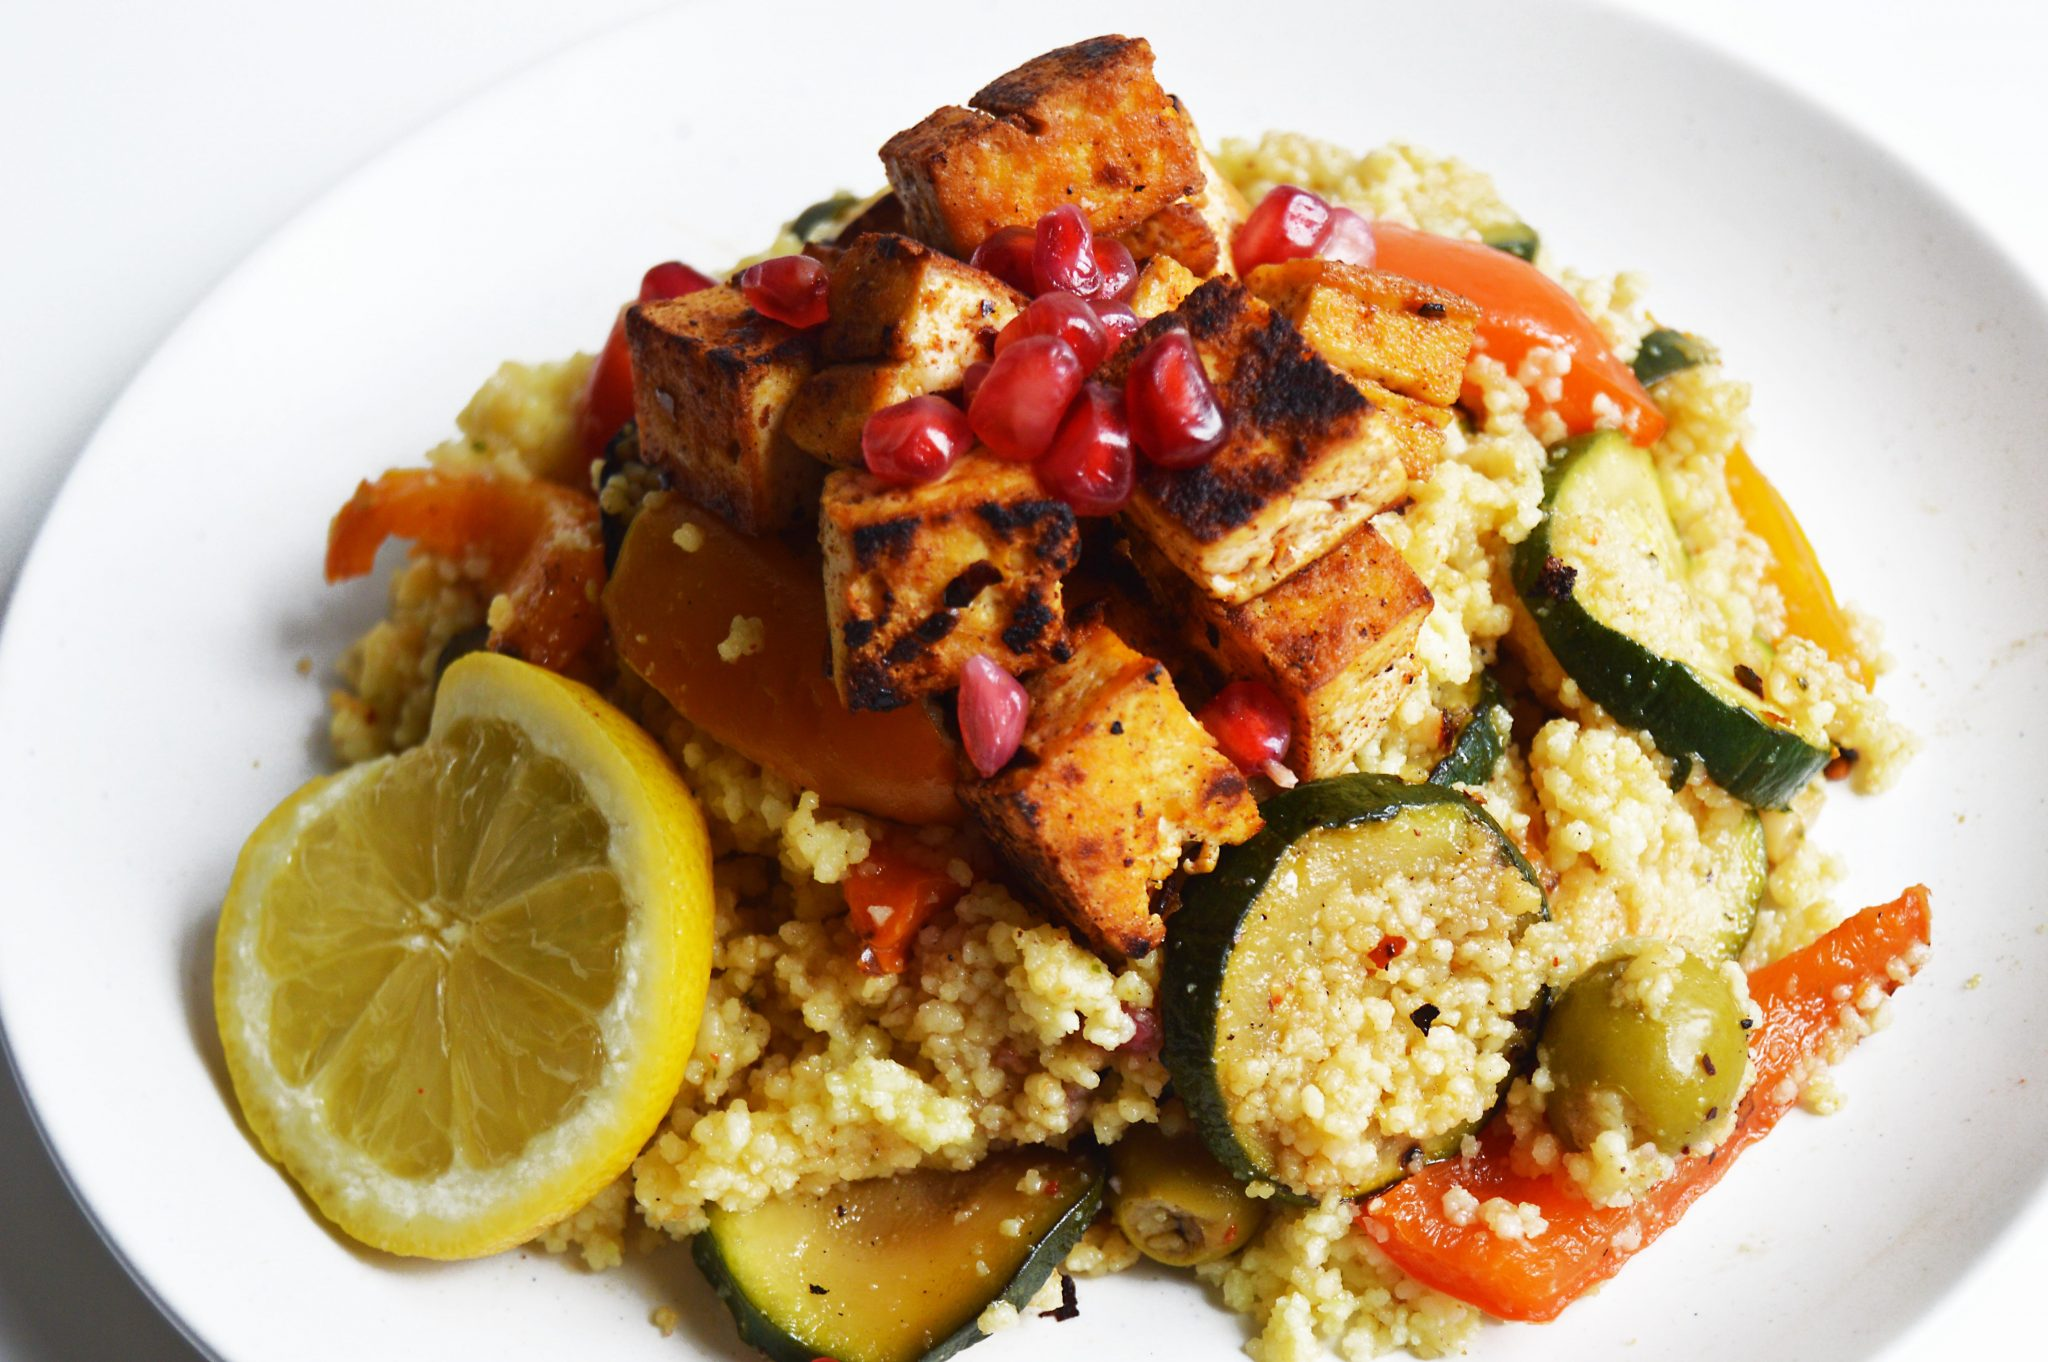 Vegan Couscous Salad with Crispy Fried Tofu and Pomegranate Seeds